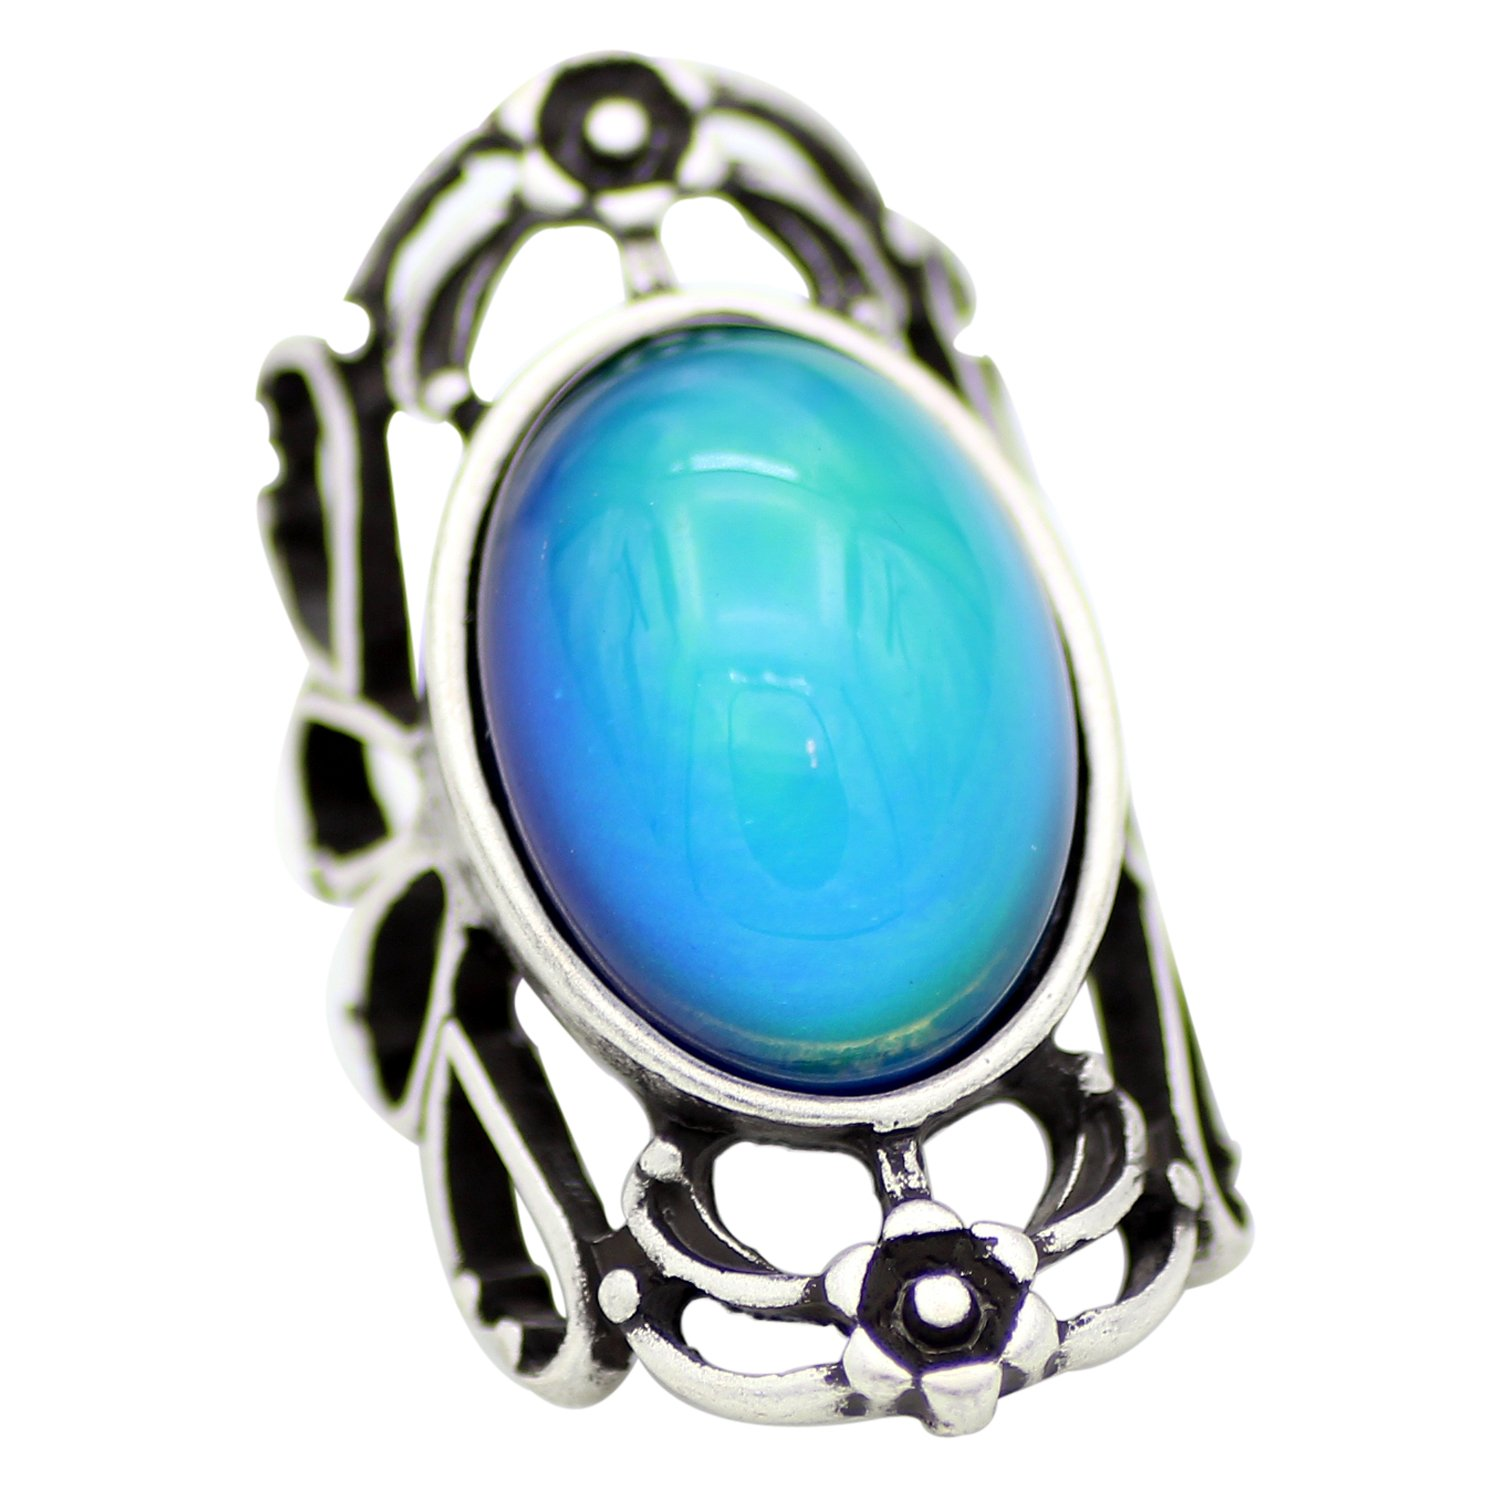 Mojo Hollowed Flower Pattern Antique Sterling Silver Plating Oval Stone Color Change Mood Ring MJ-RS053